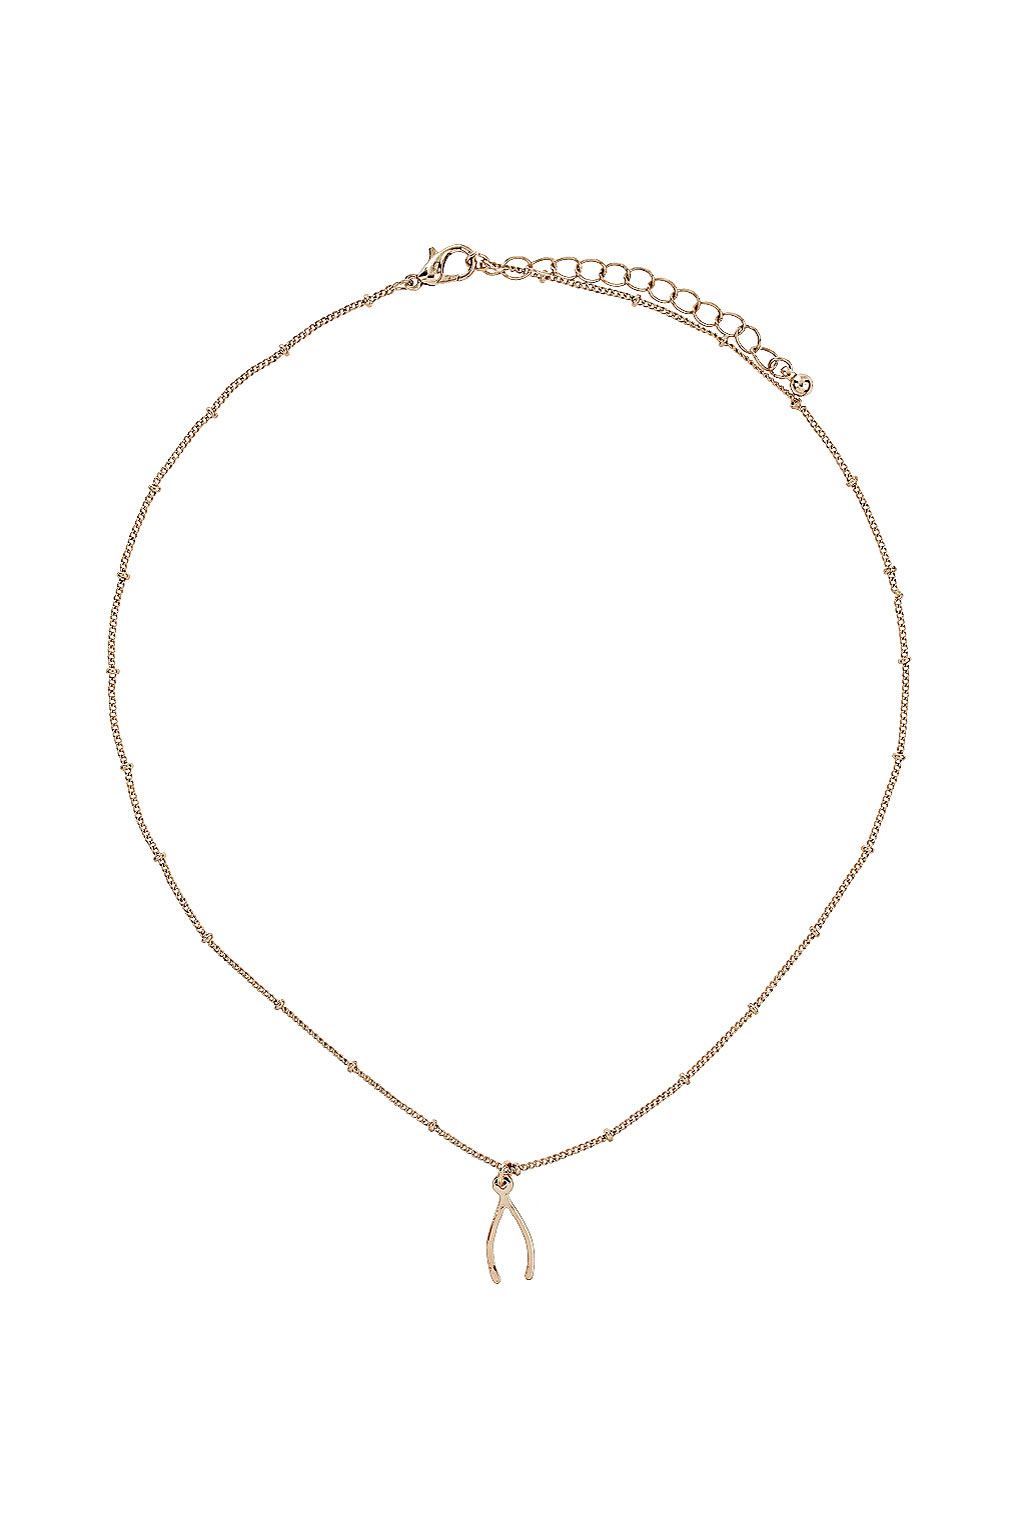 TOPSHOP Make A Wish Necklace in Gold (Metallic)